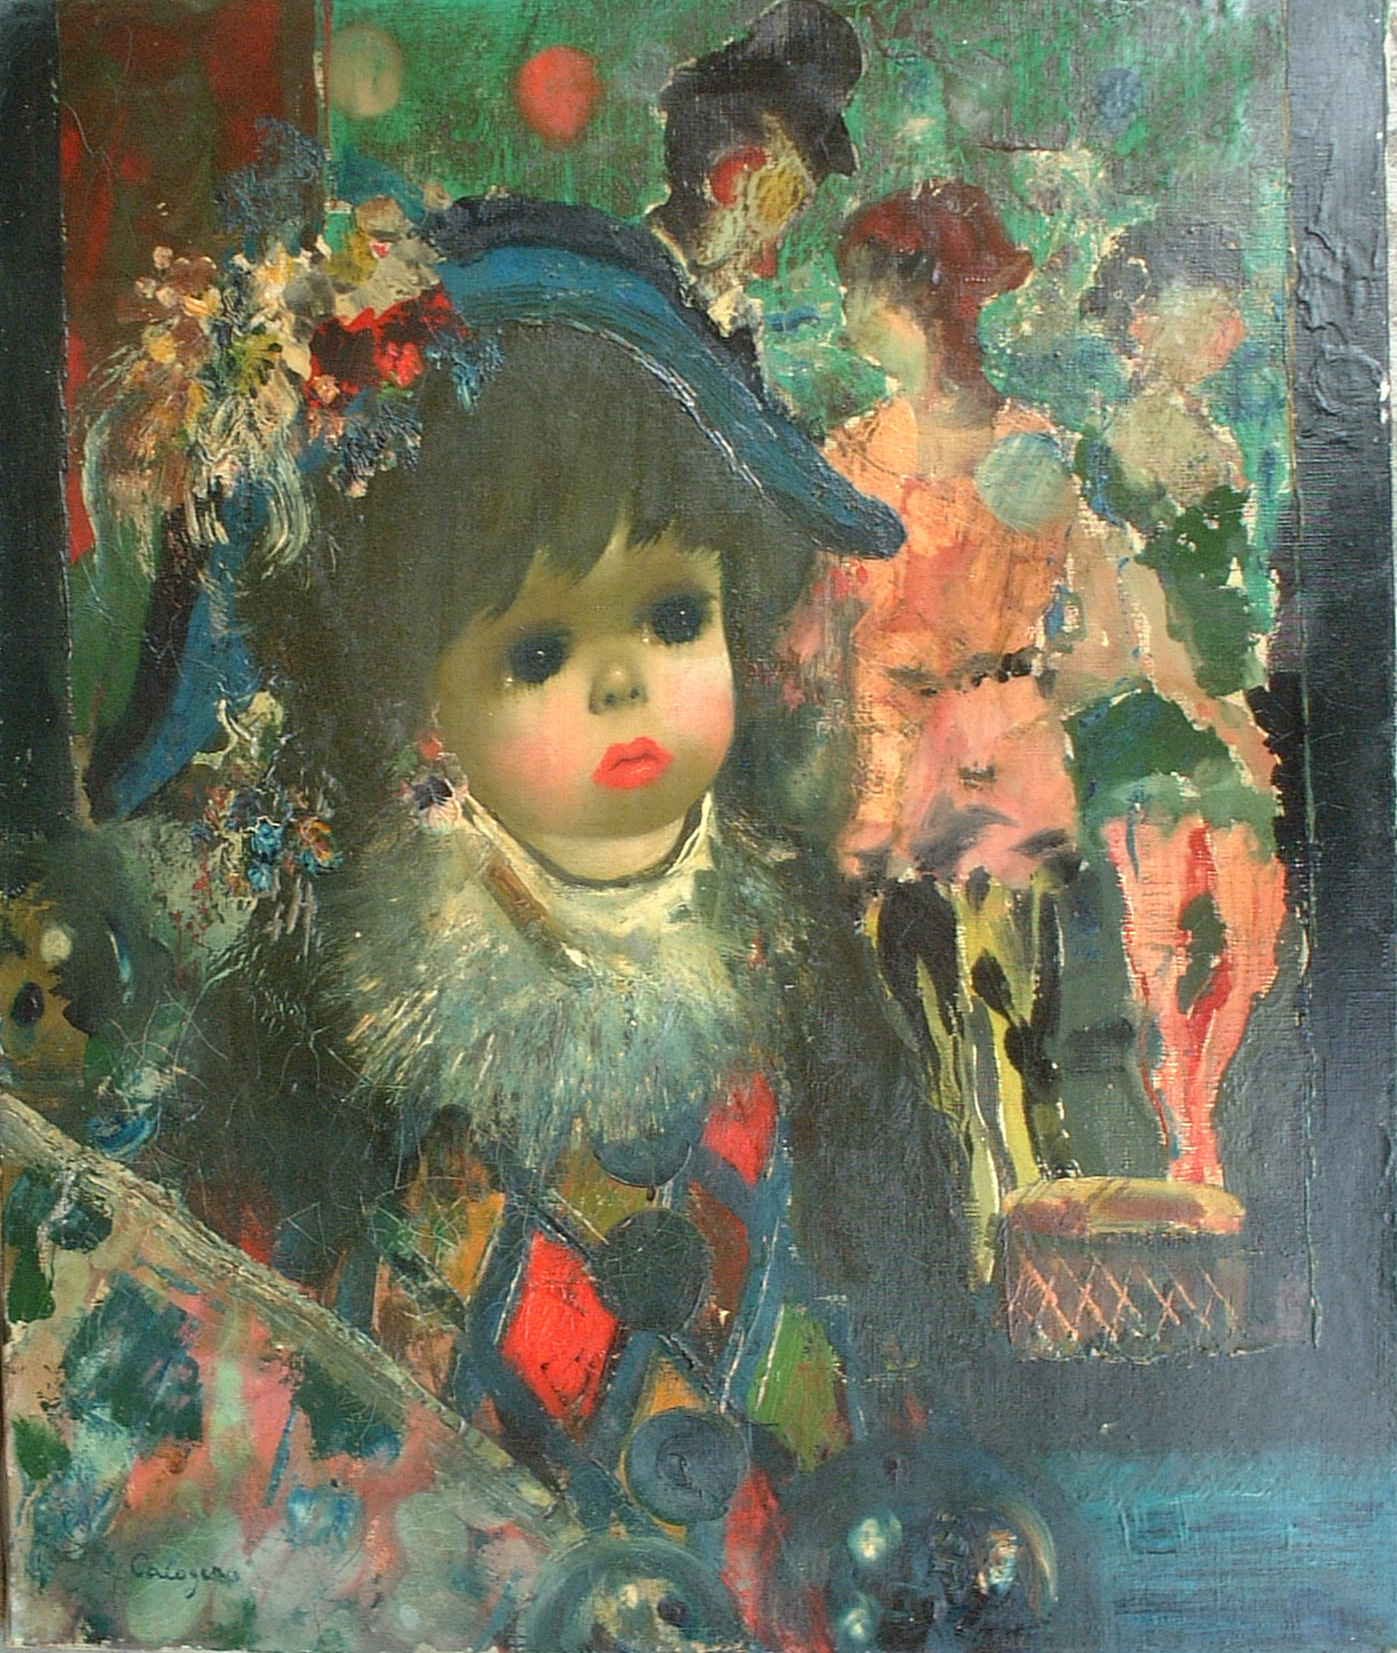 Artist: J. Calogero Title: The Little Clown Size: 21.5in x 18in Framed: No